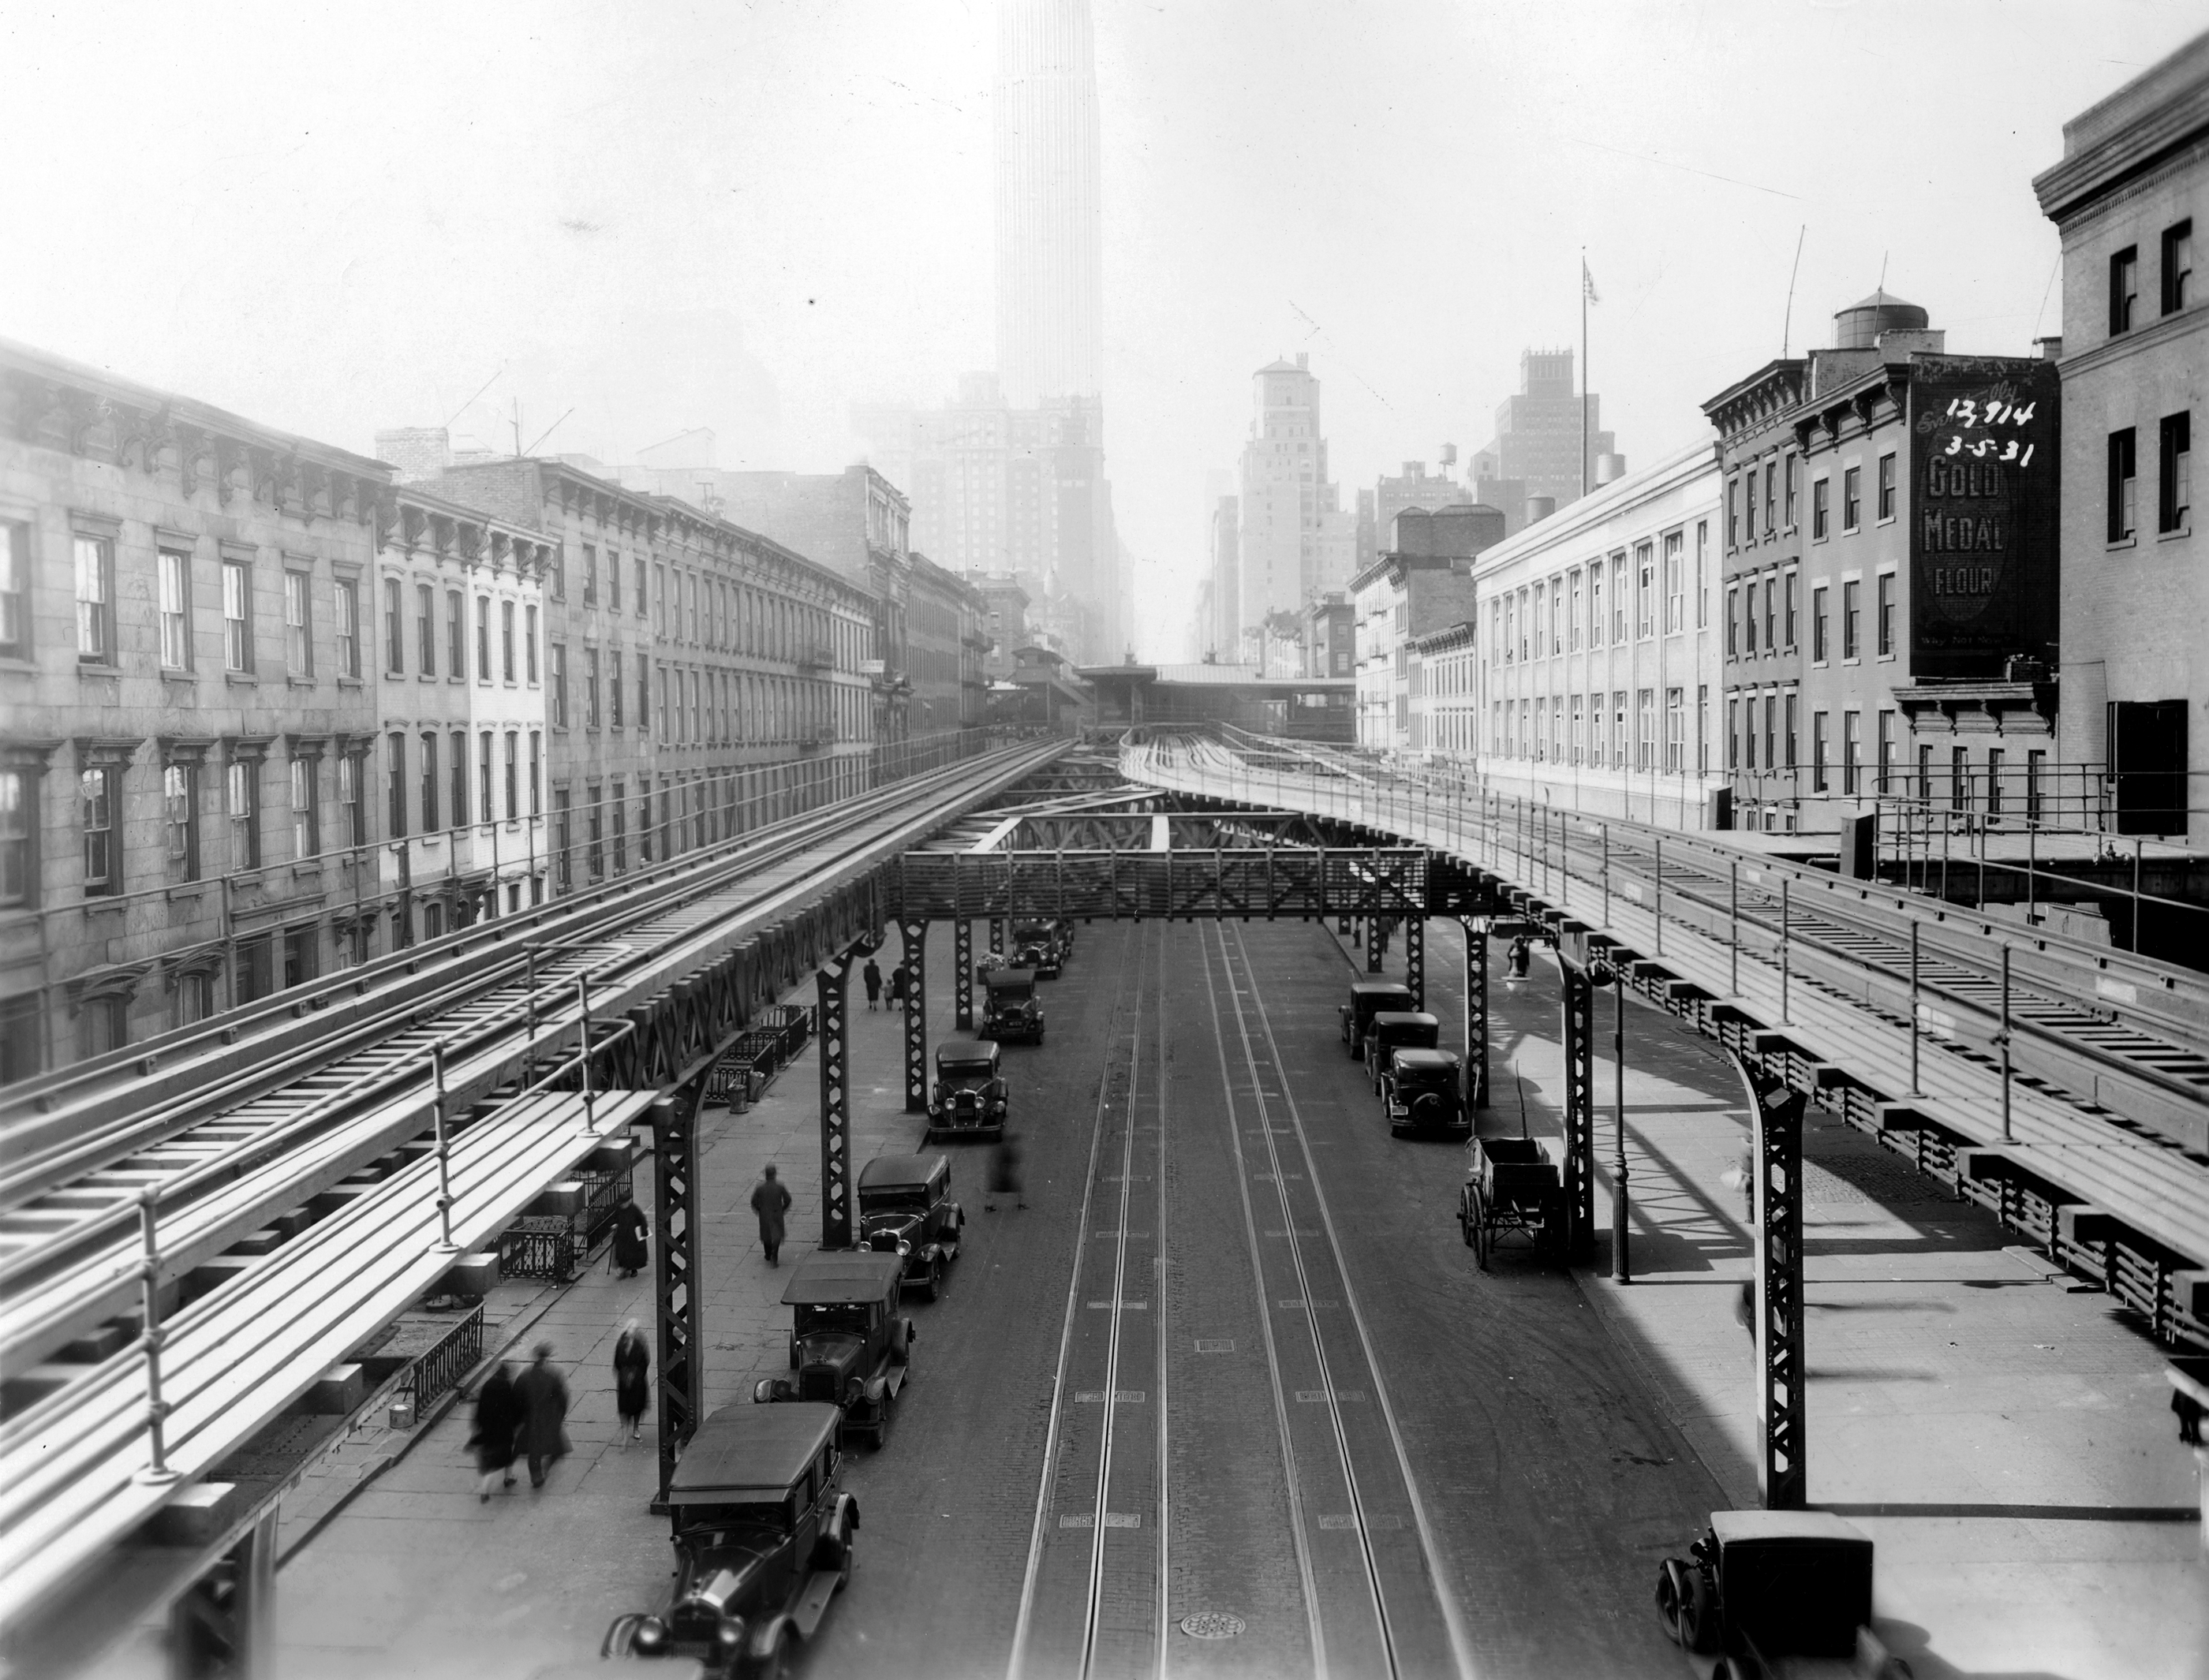 View of Third Avenue with elevated train structures visible